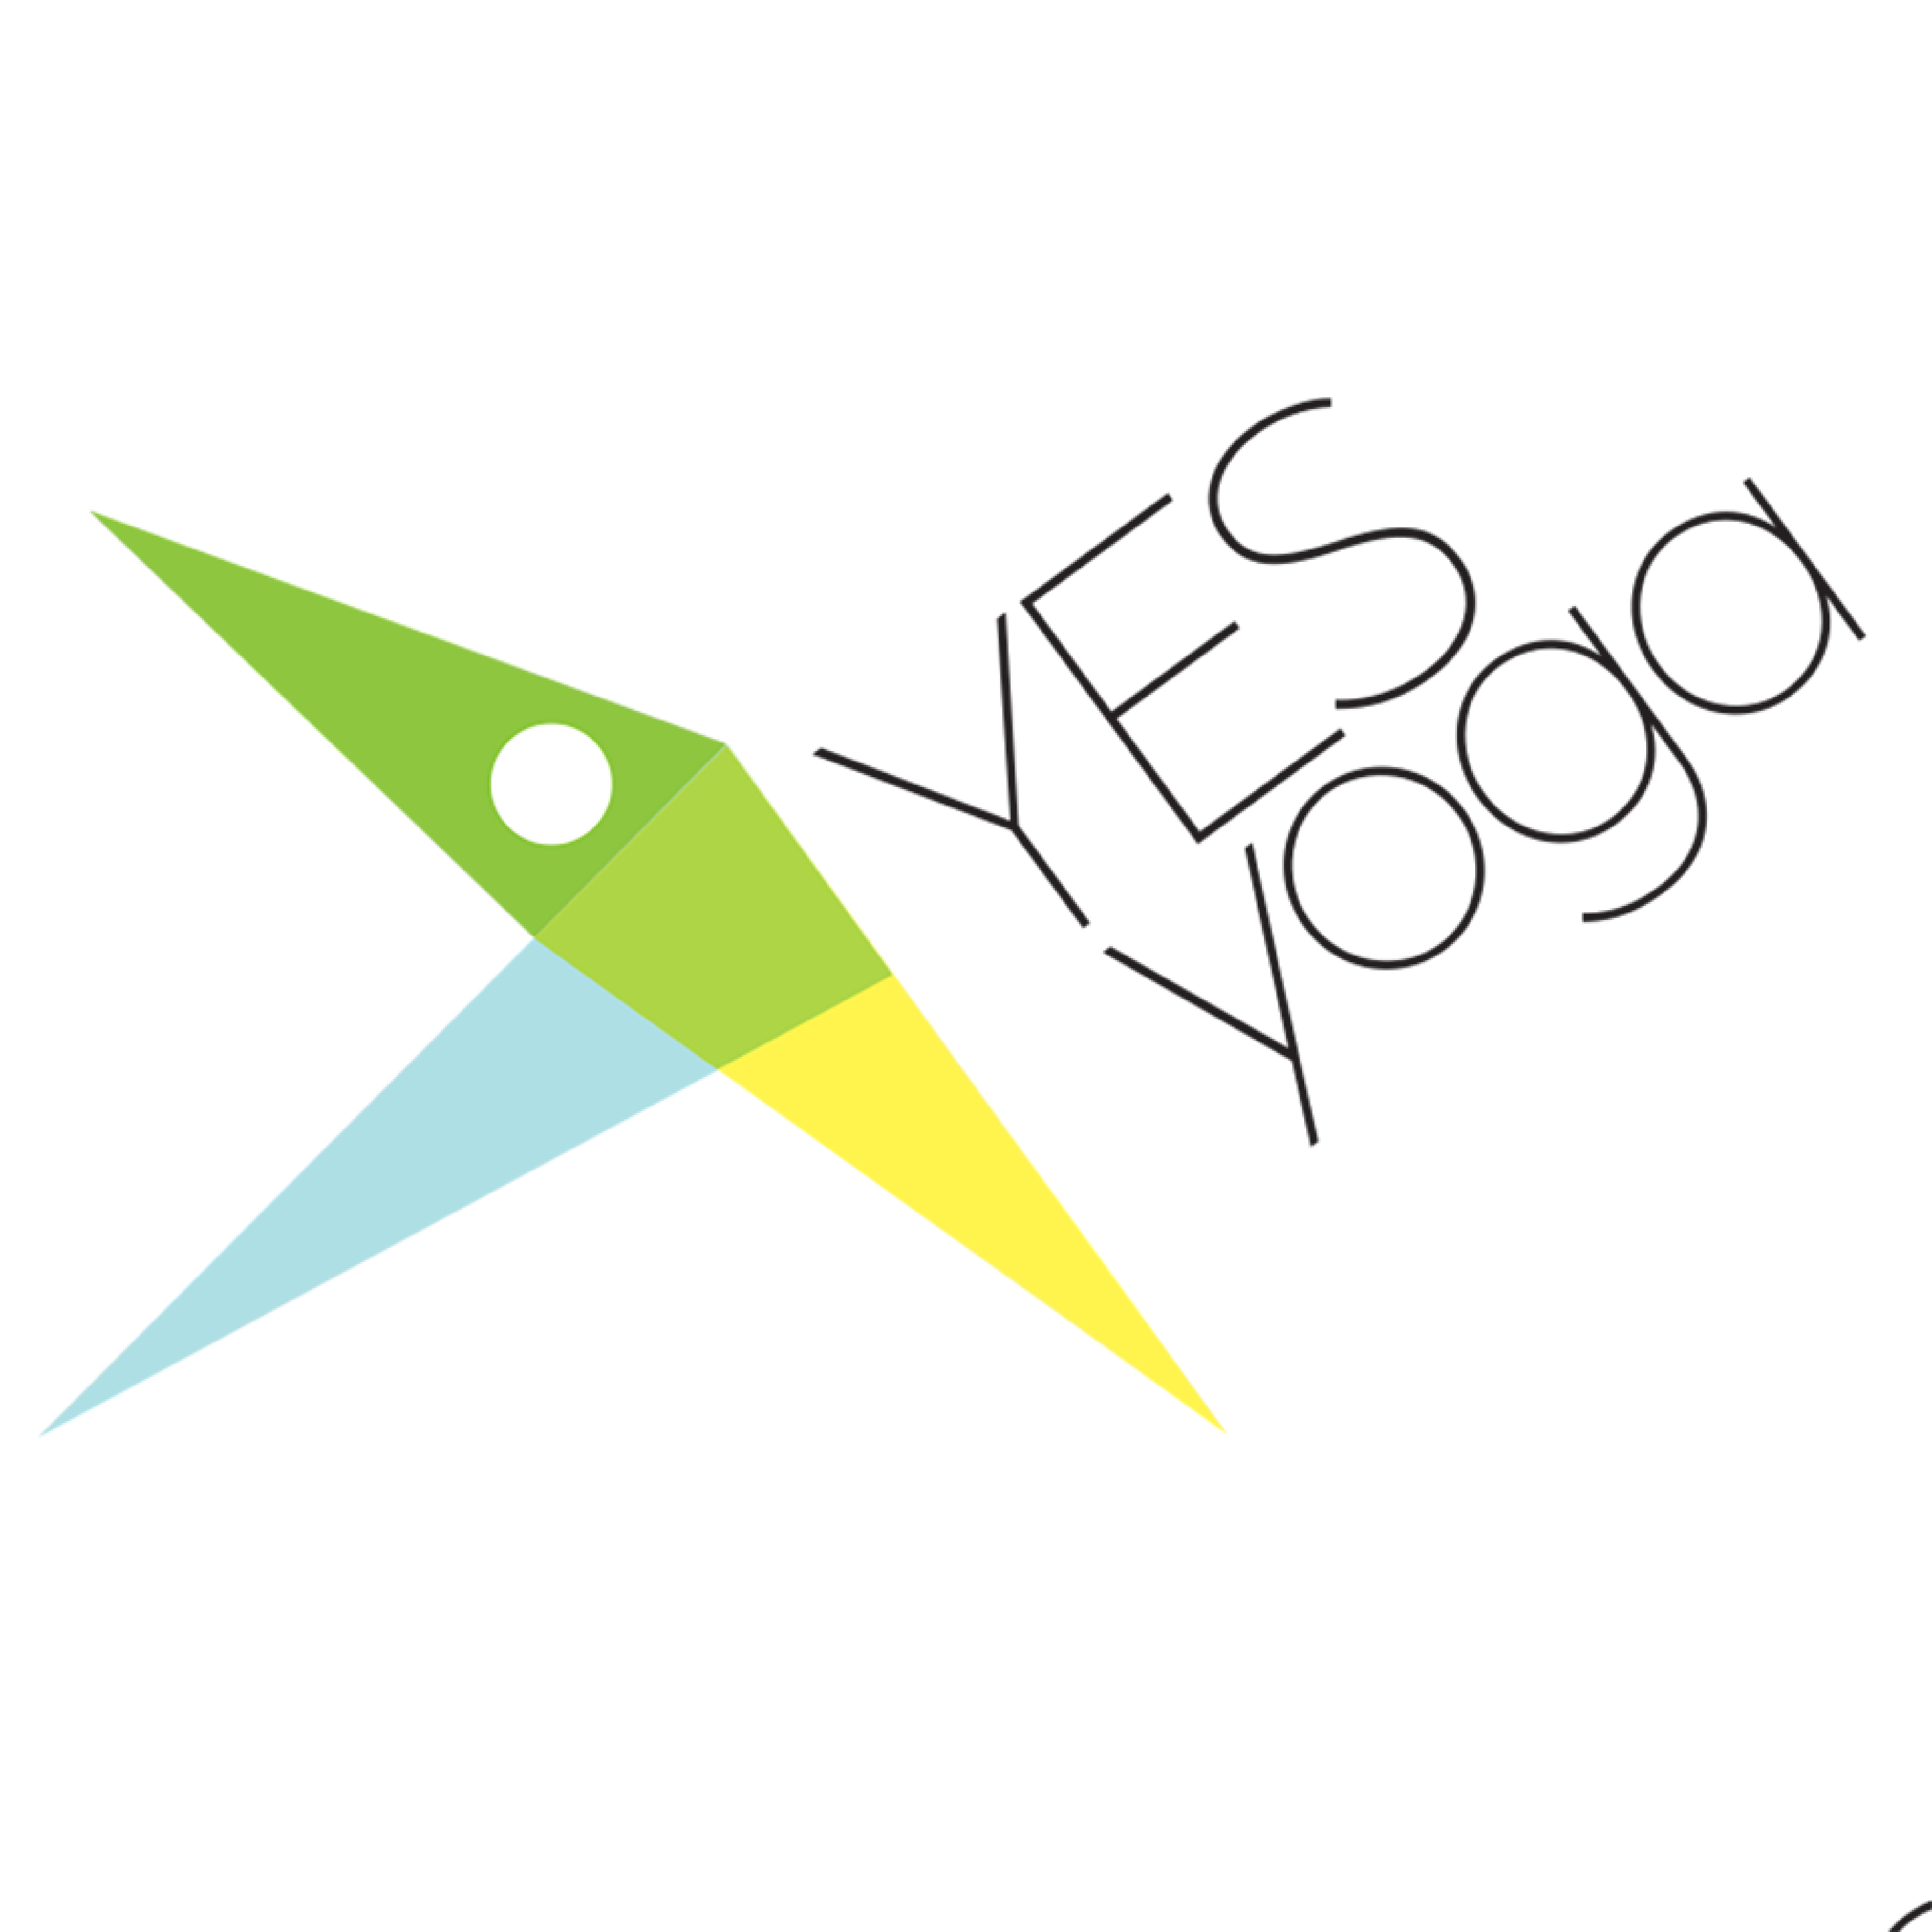 YES_yoga_1a